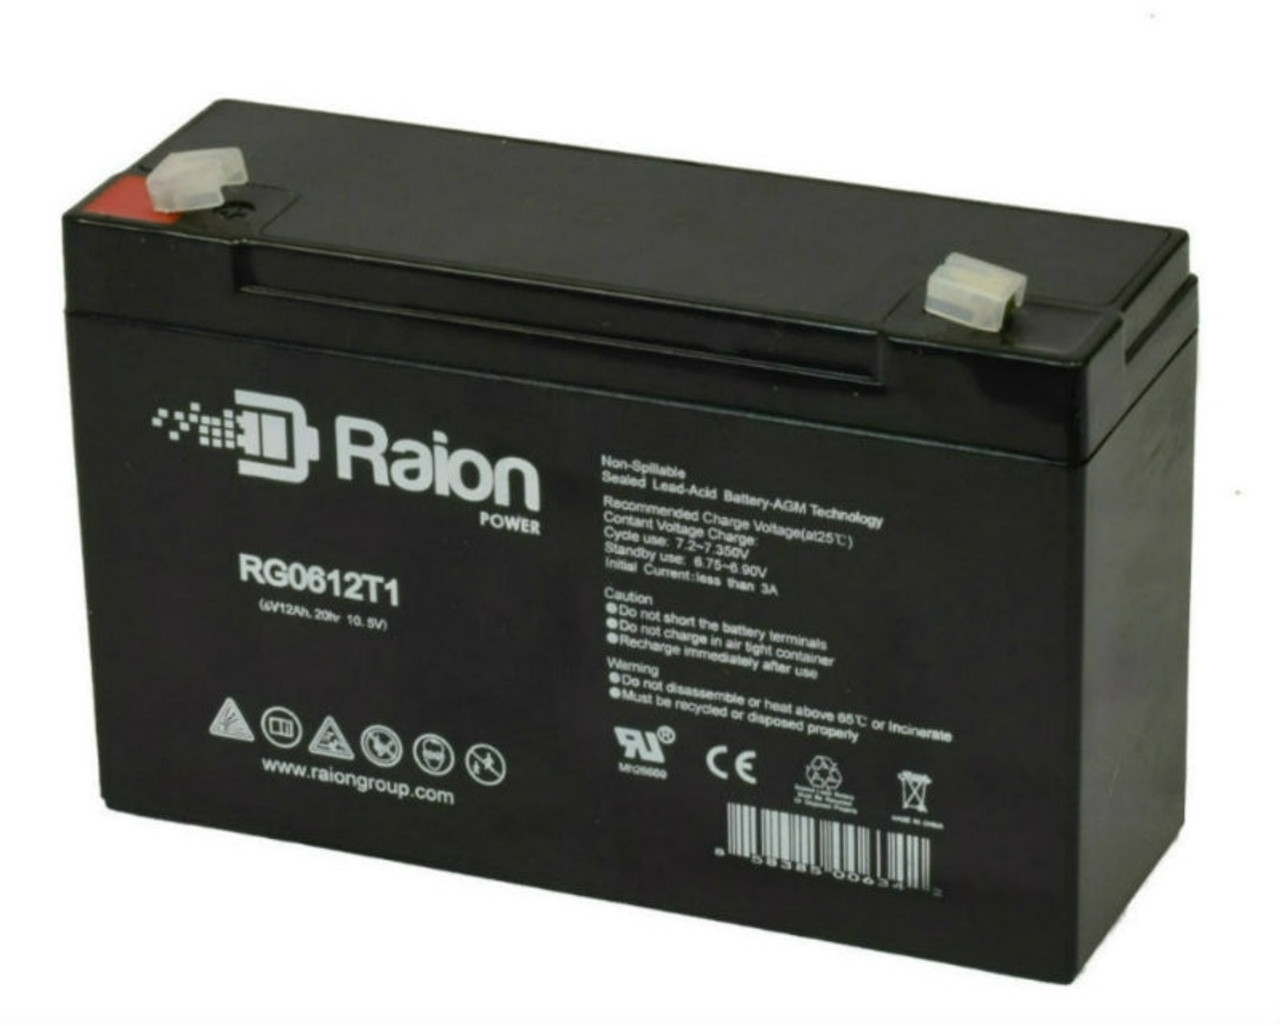 Raion Power RG06120T1 Replacement Battery Pack for Lithonia ELM2P emergency light